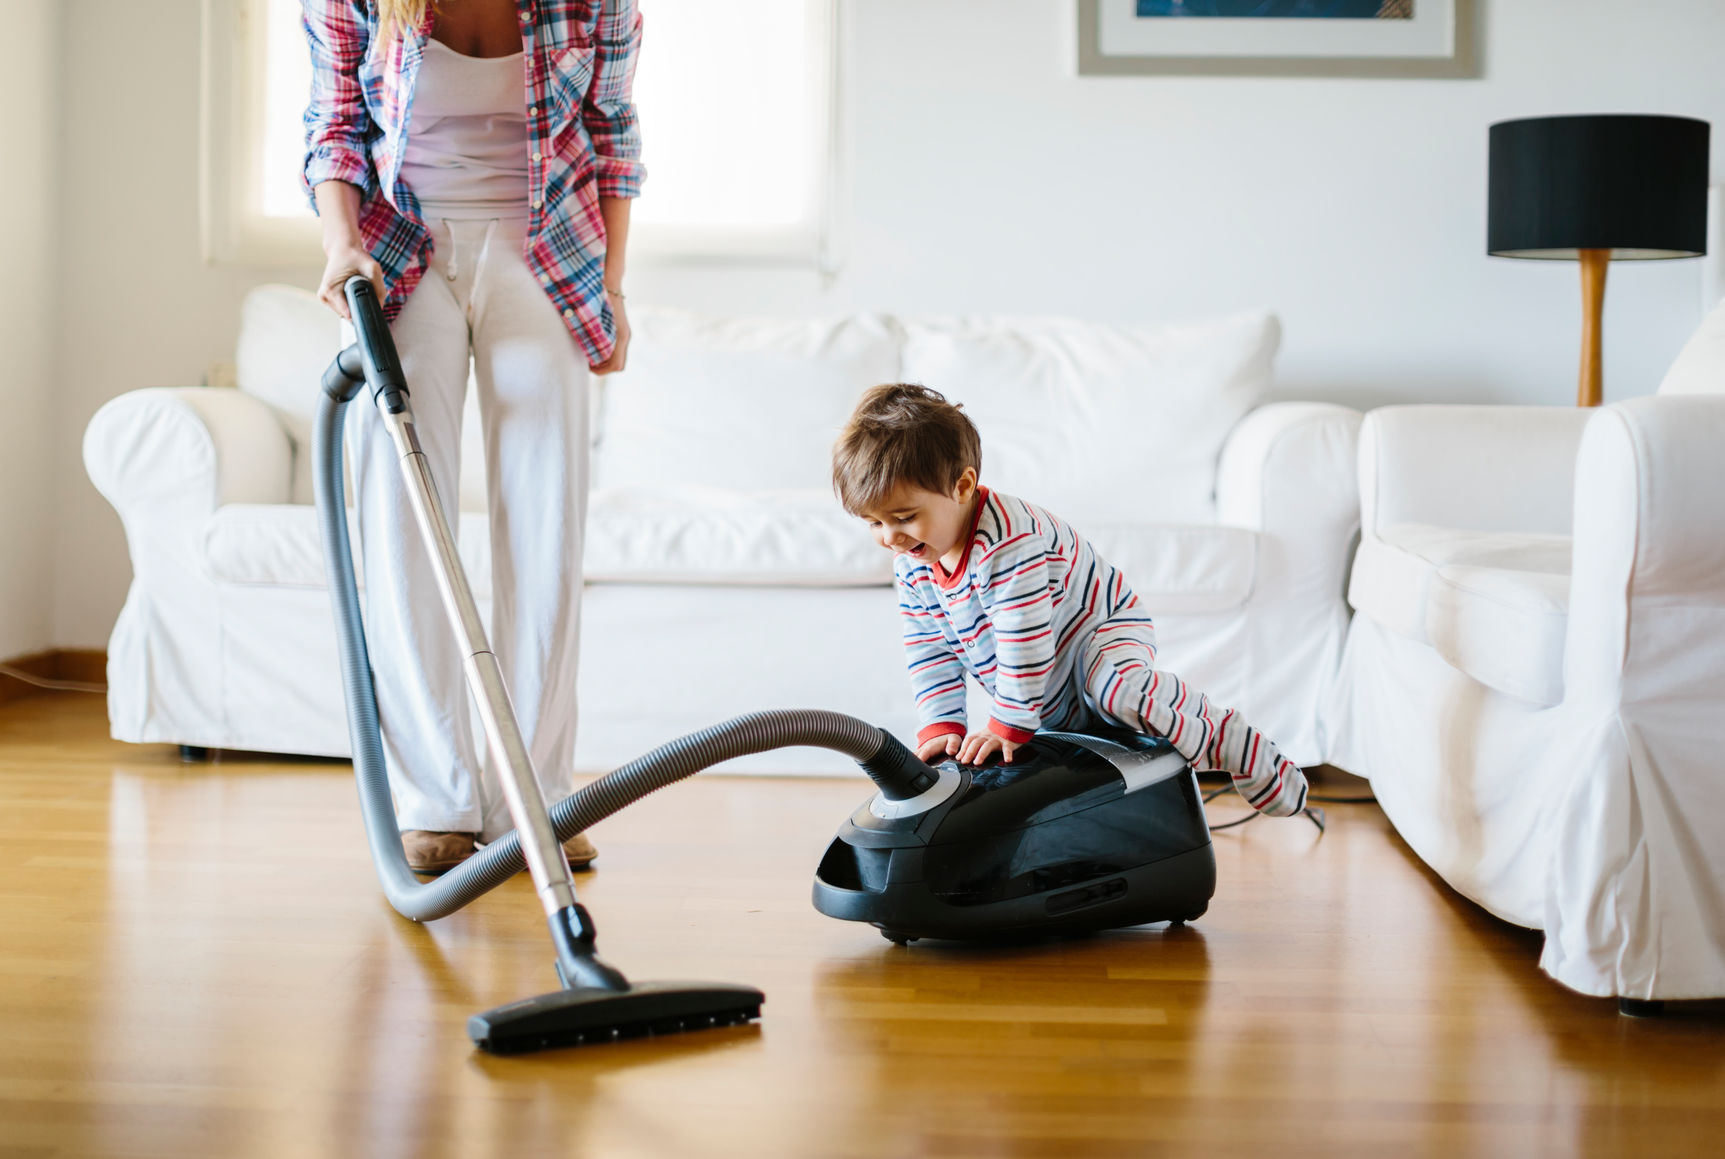 Young boy riding on the vacuum his mother is using in their living room.